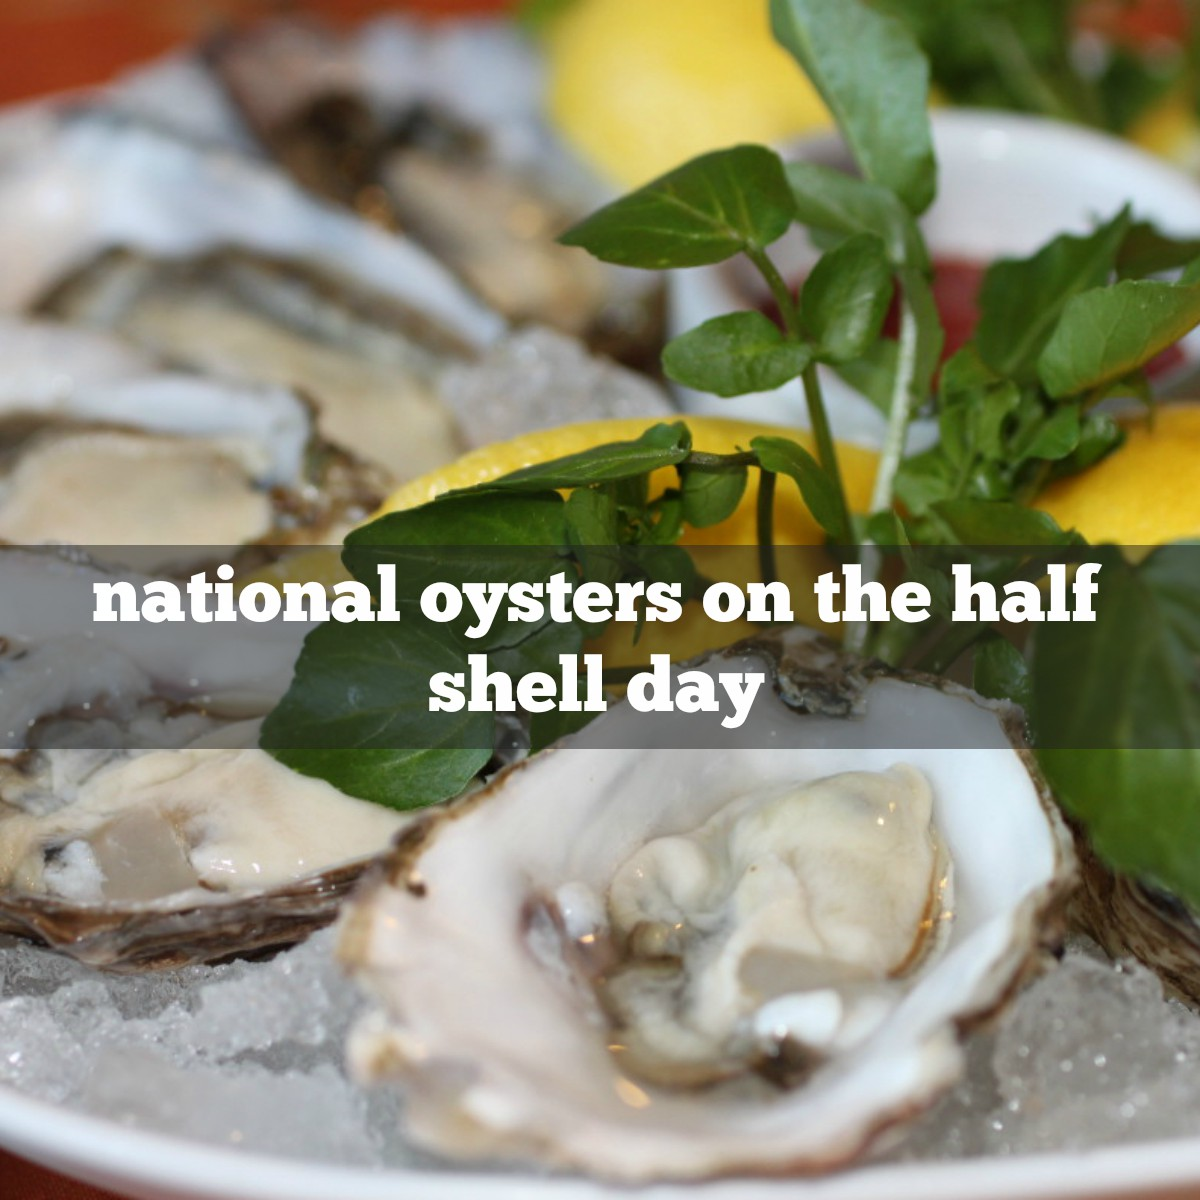 march 31st is national oysters on the half shell day